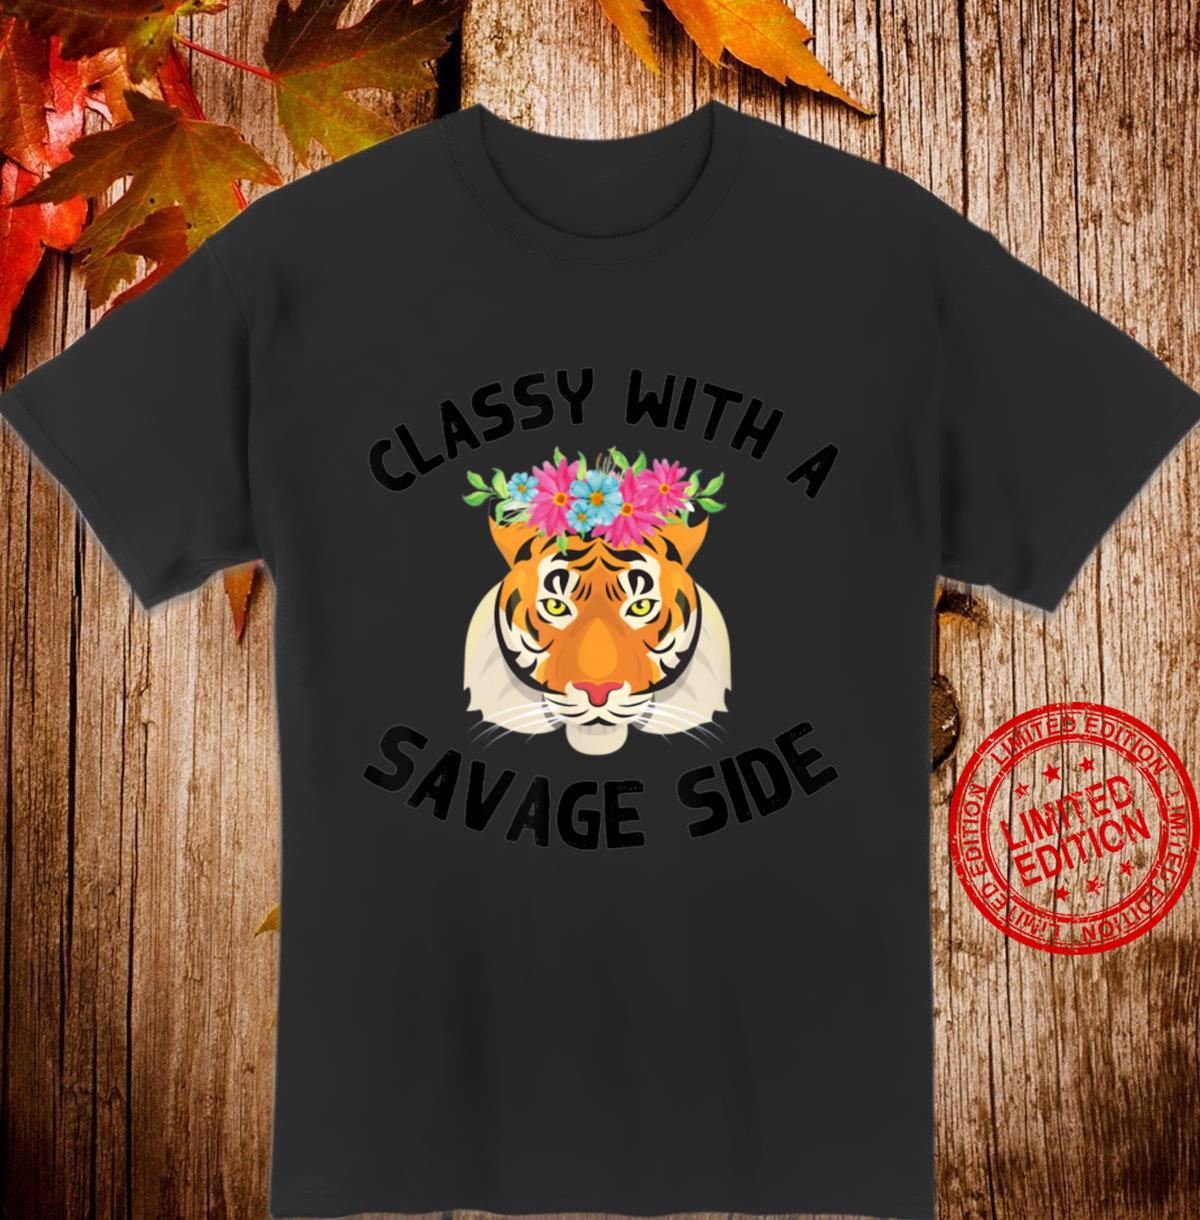 Classy With a Savage Side Tiger Flower Crown Floral Animal Shirt